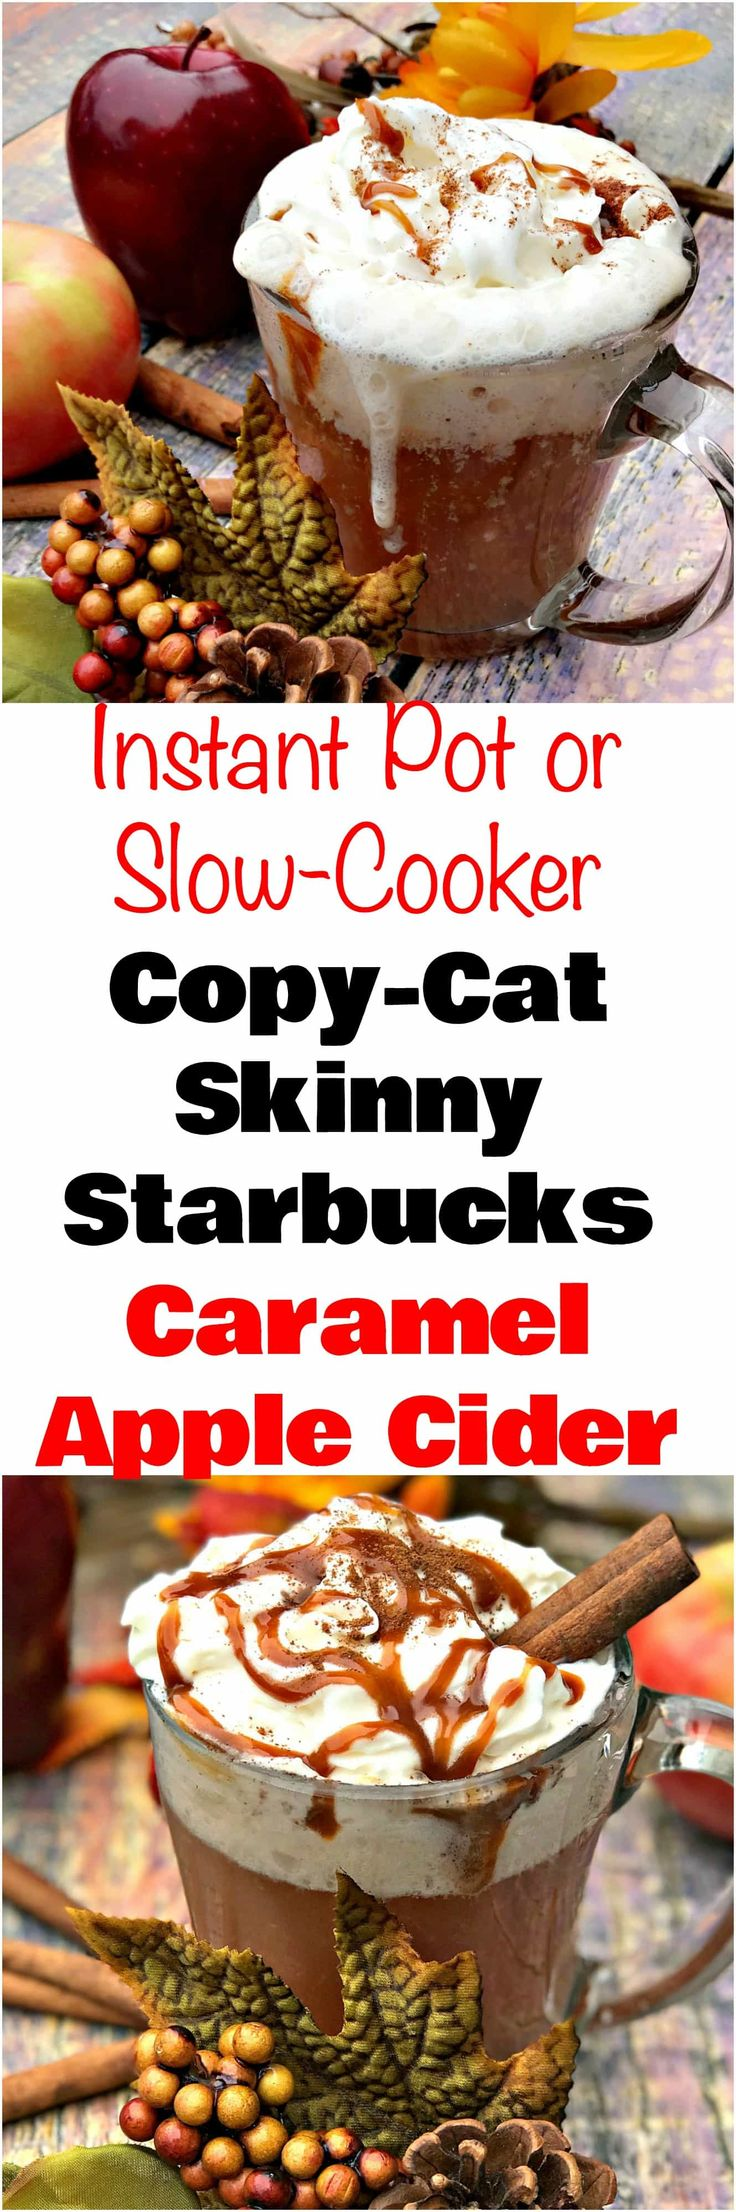 Instant Pot Slow-Cooker Skinny Copy-Cat Starbucks Apple Cider is a quick and easy crockpot and pressure cooker recipe that is low-calorie with cinnamon.